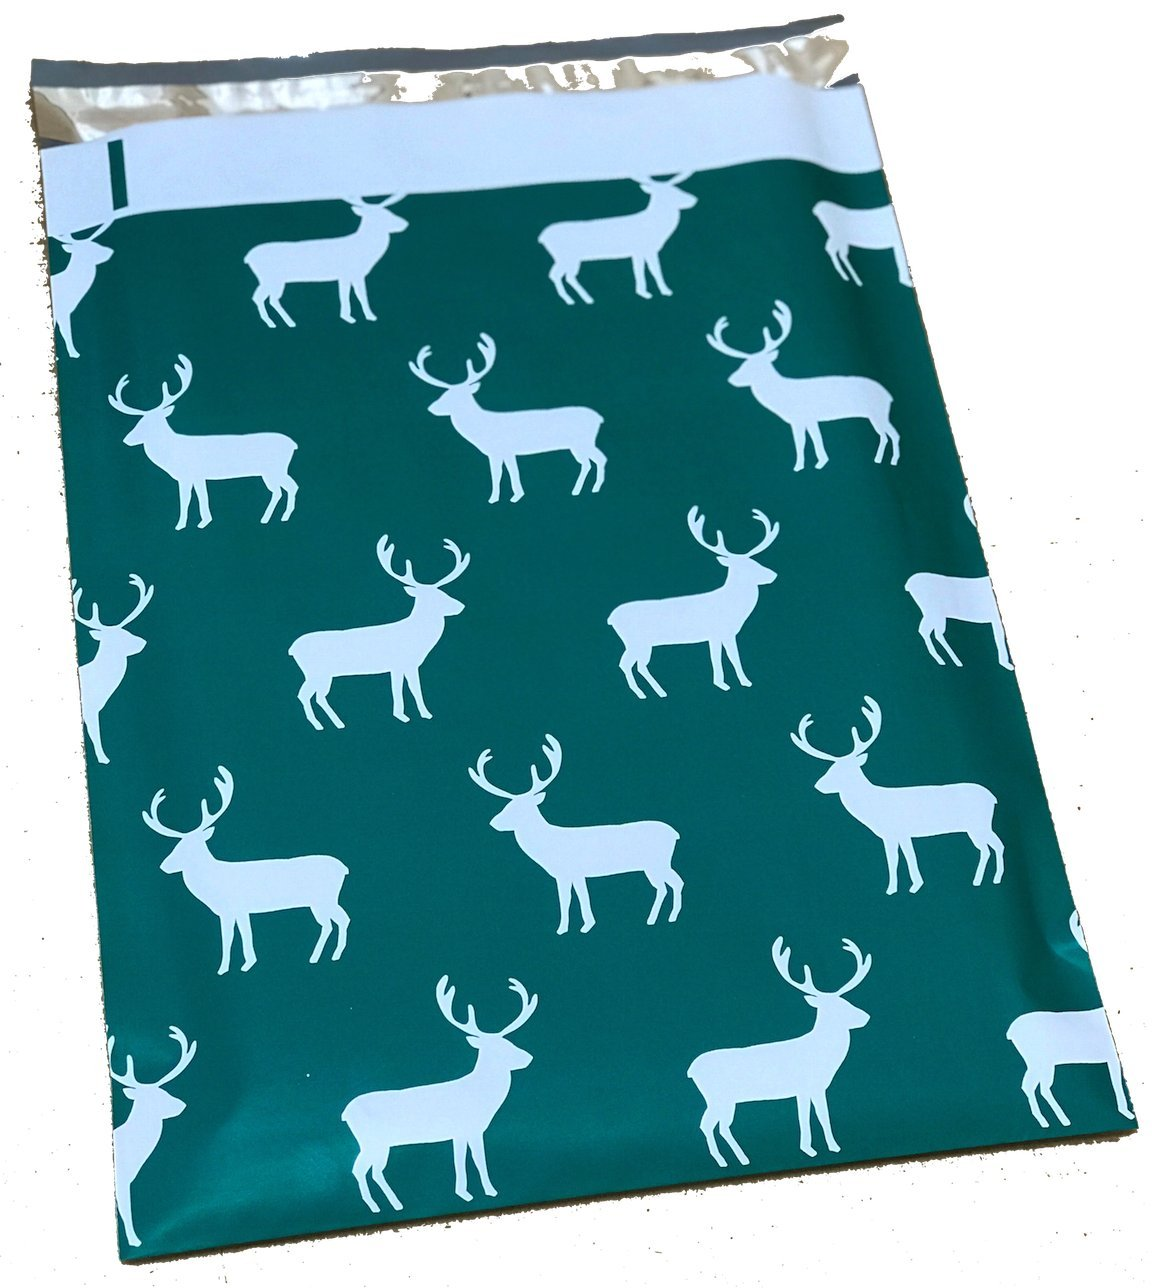 Poly Mailers Deer Designer Poly Mailers Custom Bags Green & White Shipping Envelopes Plastic Bags #SmileMail (100 10x13)